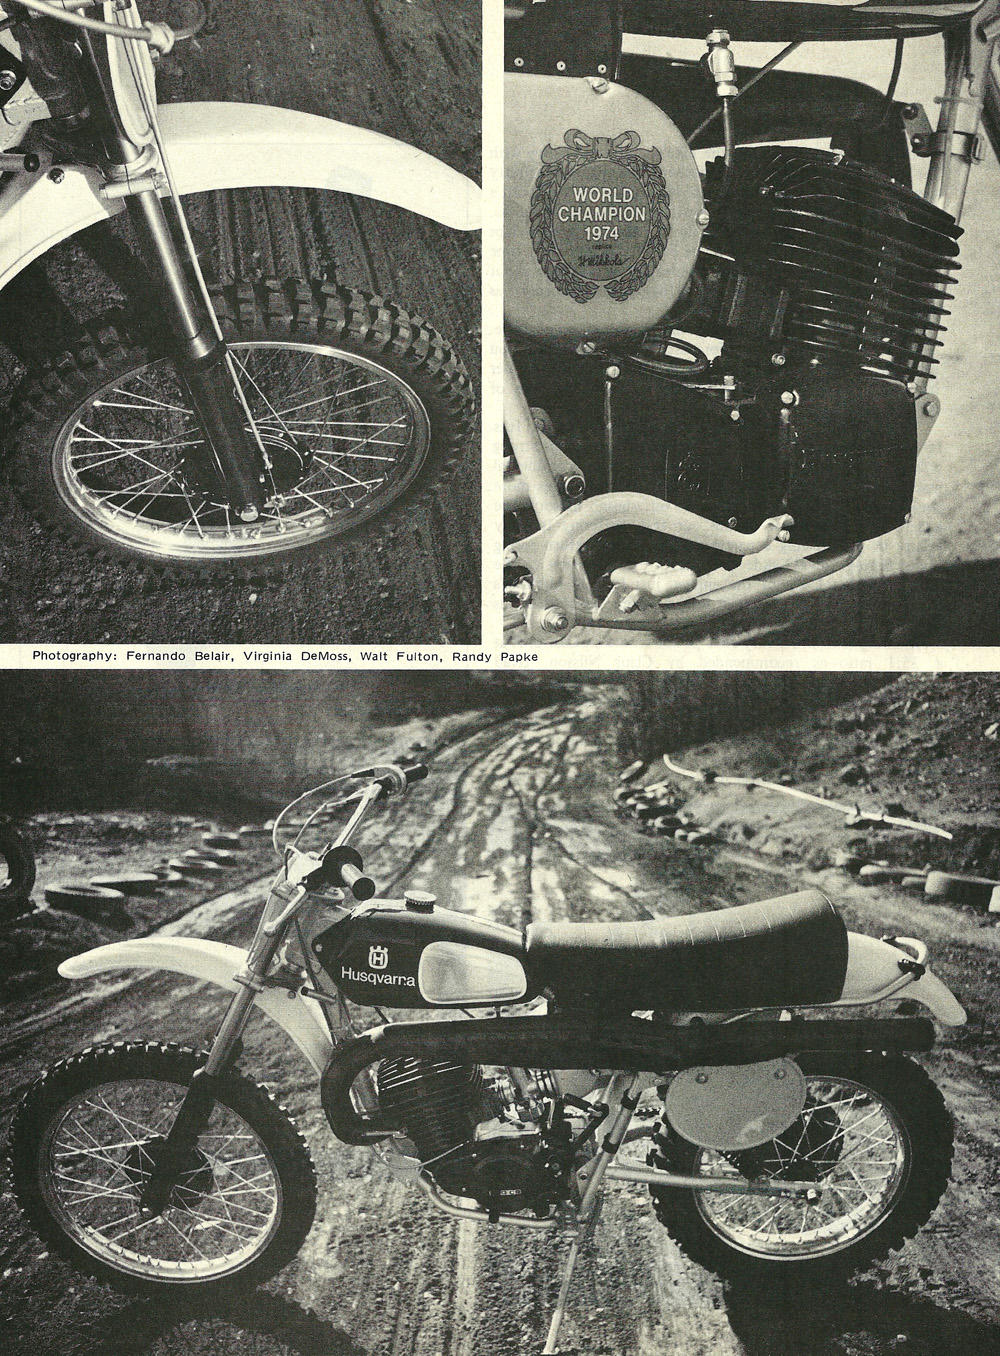 1975 Husqvarna 360CR road test 04.jpg